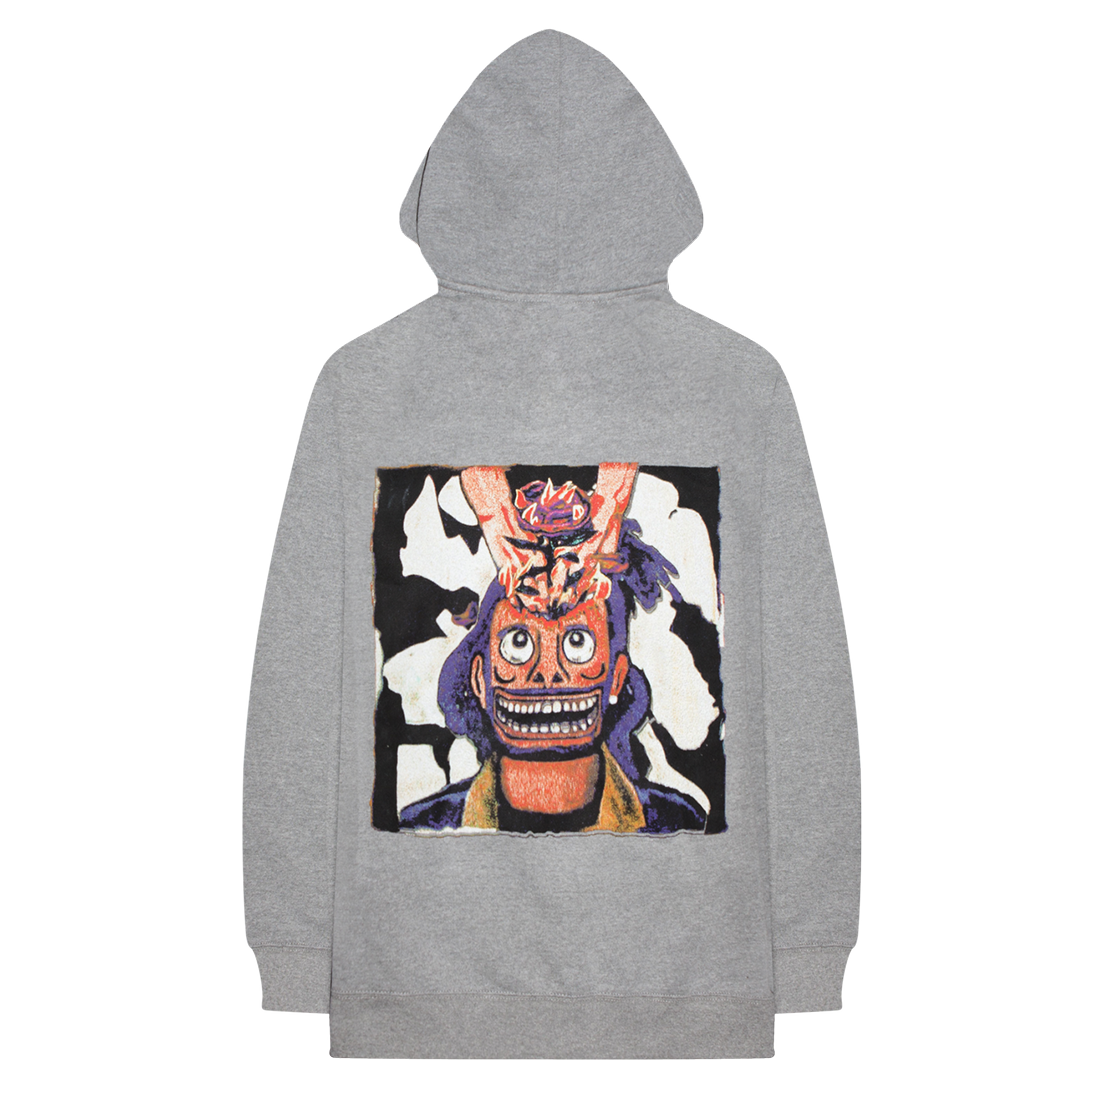 The Weeknd: CHAPTER III FLEECE ZIP-UP HOOD - XL